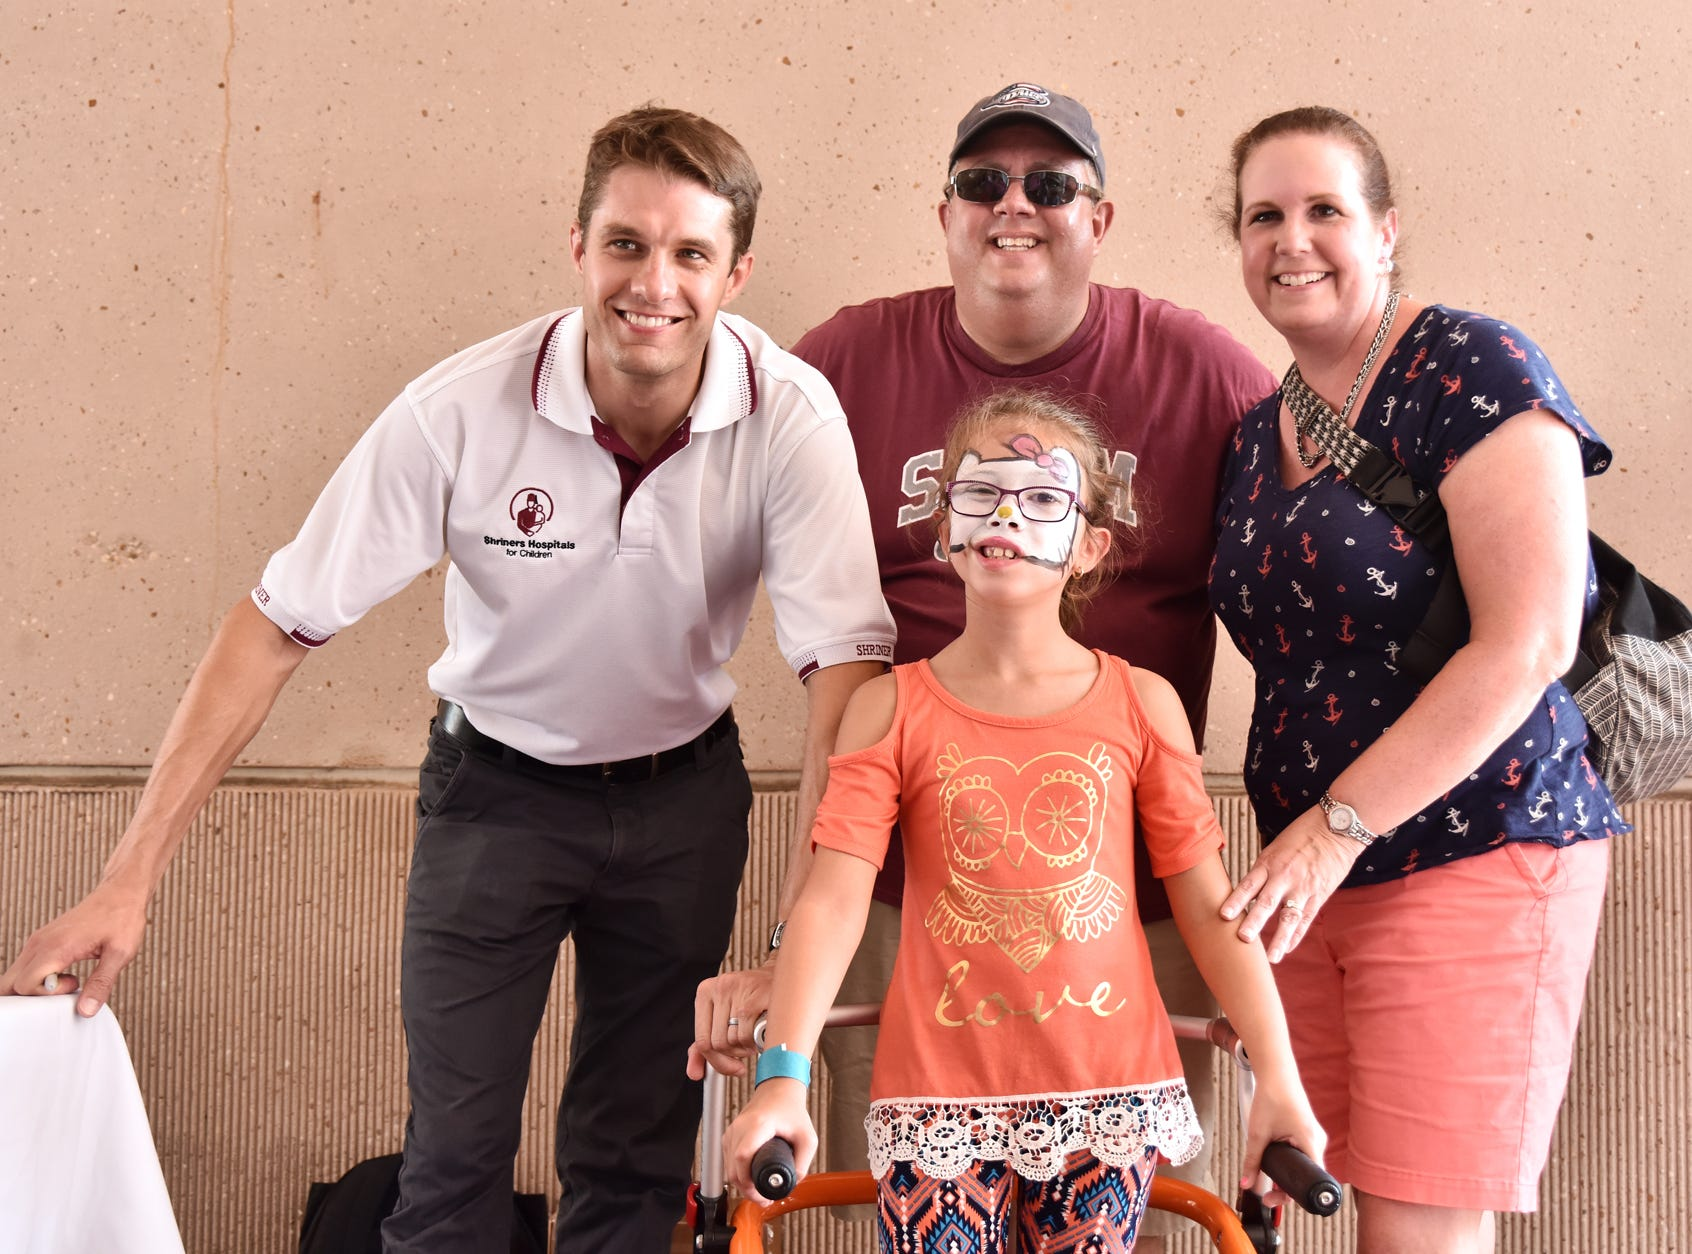 A family poses for a photo with NASCAR Driver David Ragan at the Shriners Hospital for Children in Greenville on August 15, 2018.